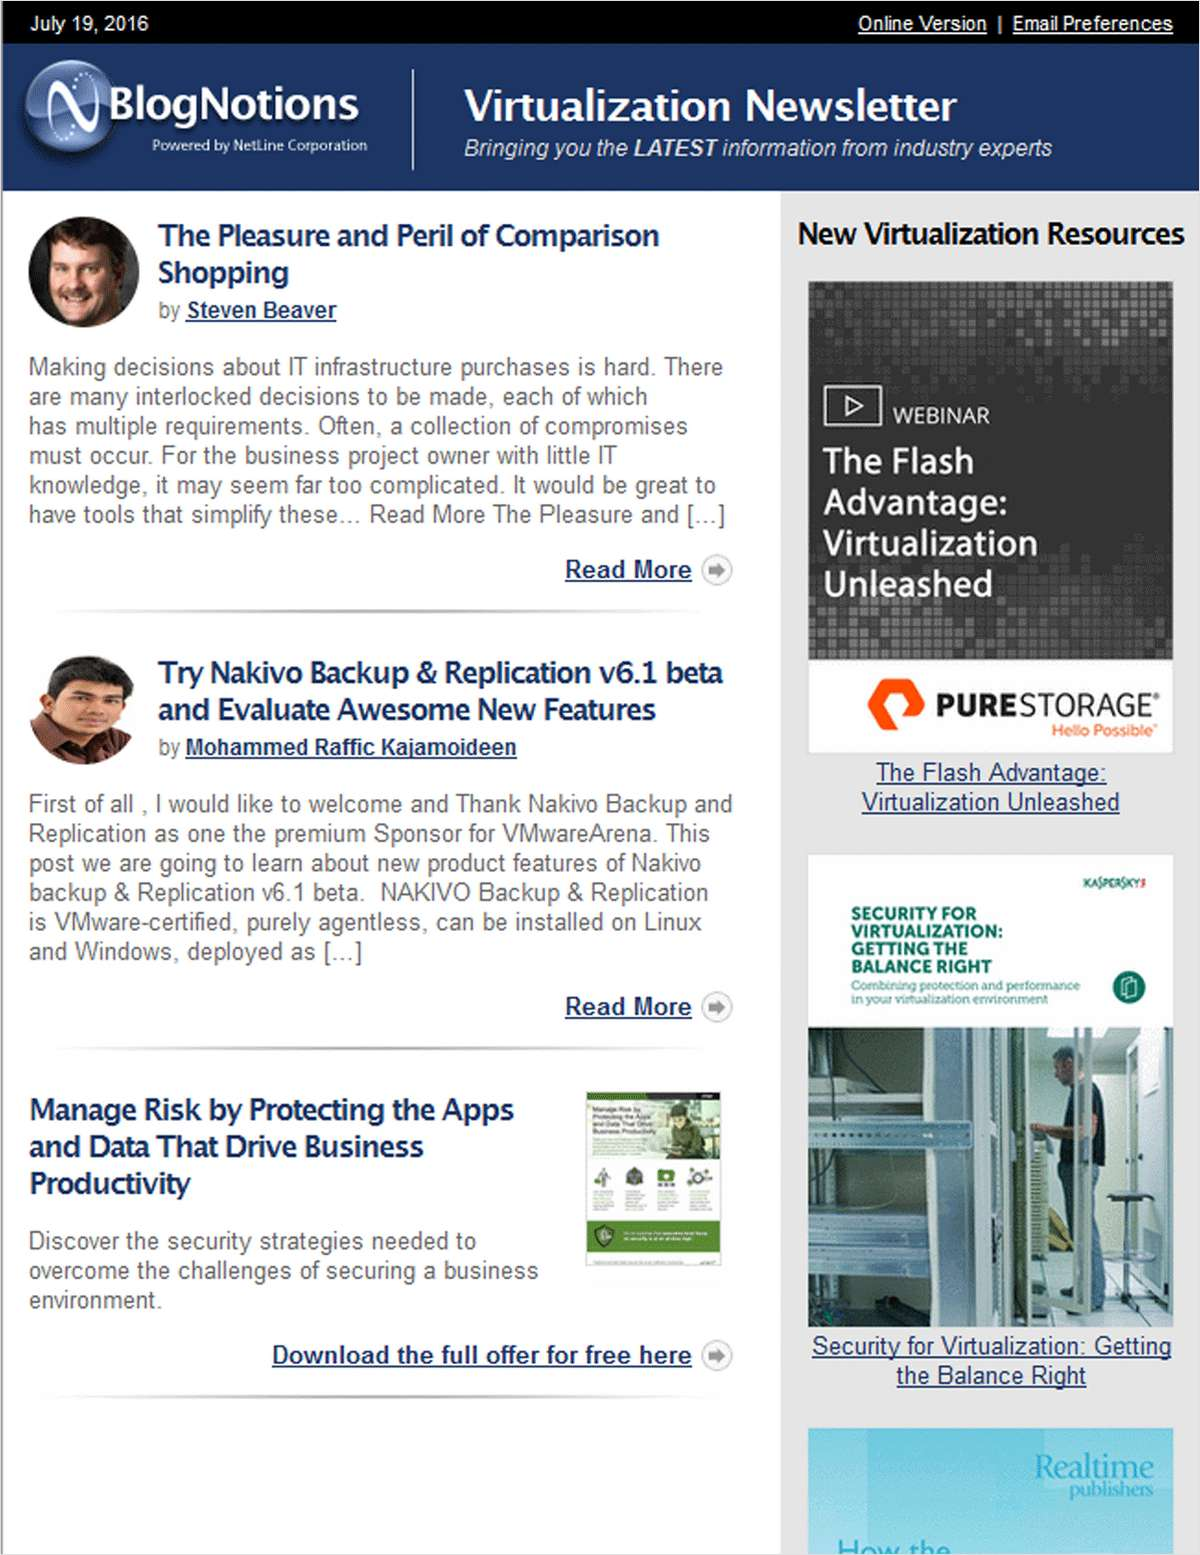 BlogNotions Virtualization Newsletter: Monthly eNewsletter Featuring Blogs from Industry Experts